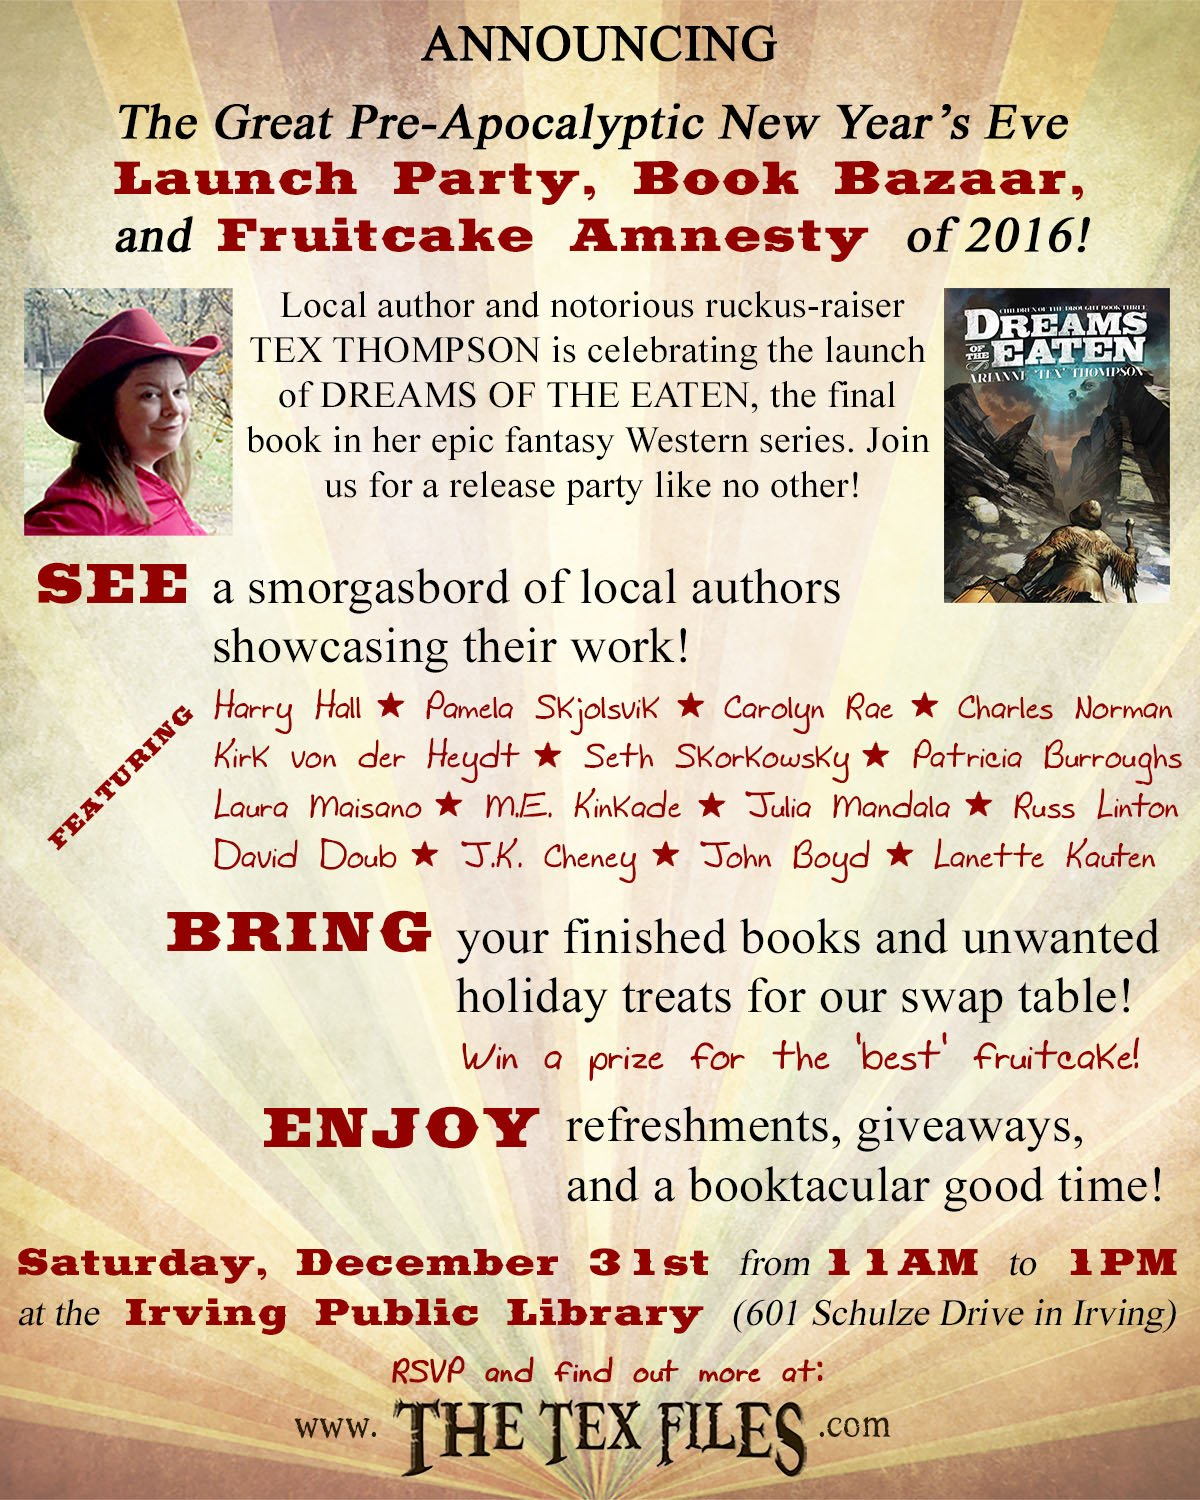 So I set up this thing here: the Great Pre-Apocalyptic New Year's Eve Launch Party, Book Bazaar, and Fruitcake Amnesty of 2016. Sweet, huh? https://t.co/RAQcIMIMgu